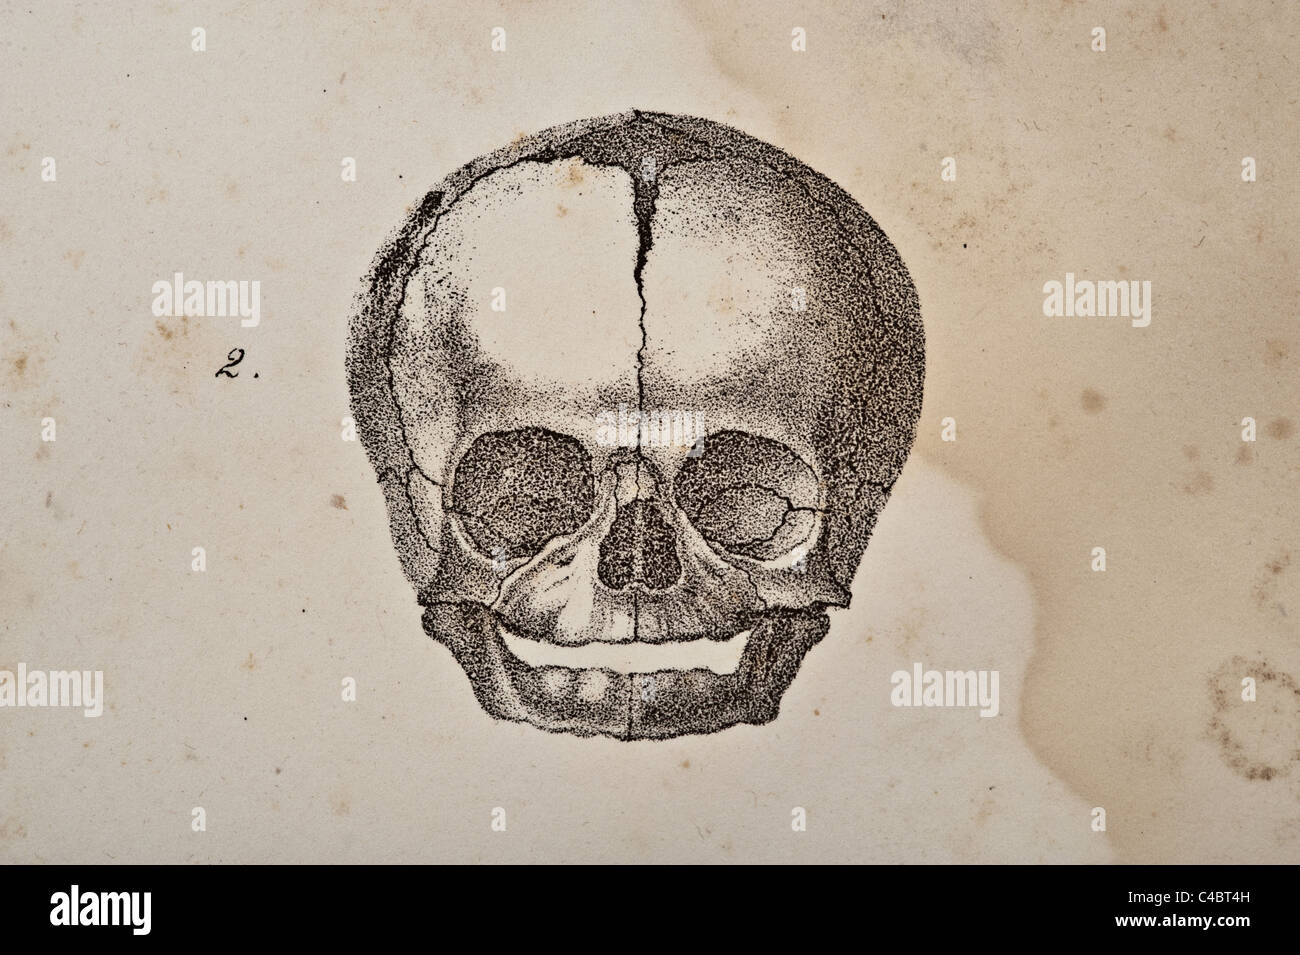 hight resolution of a skull illustration of fetus circa 1844 stock image